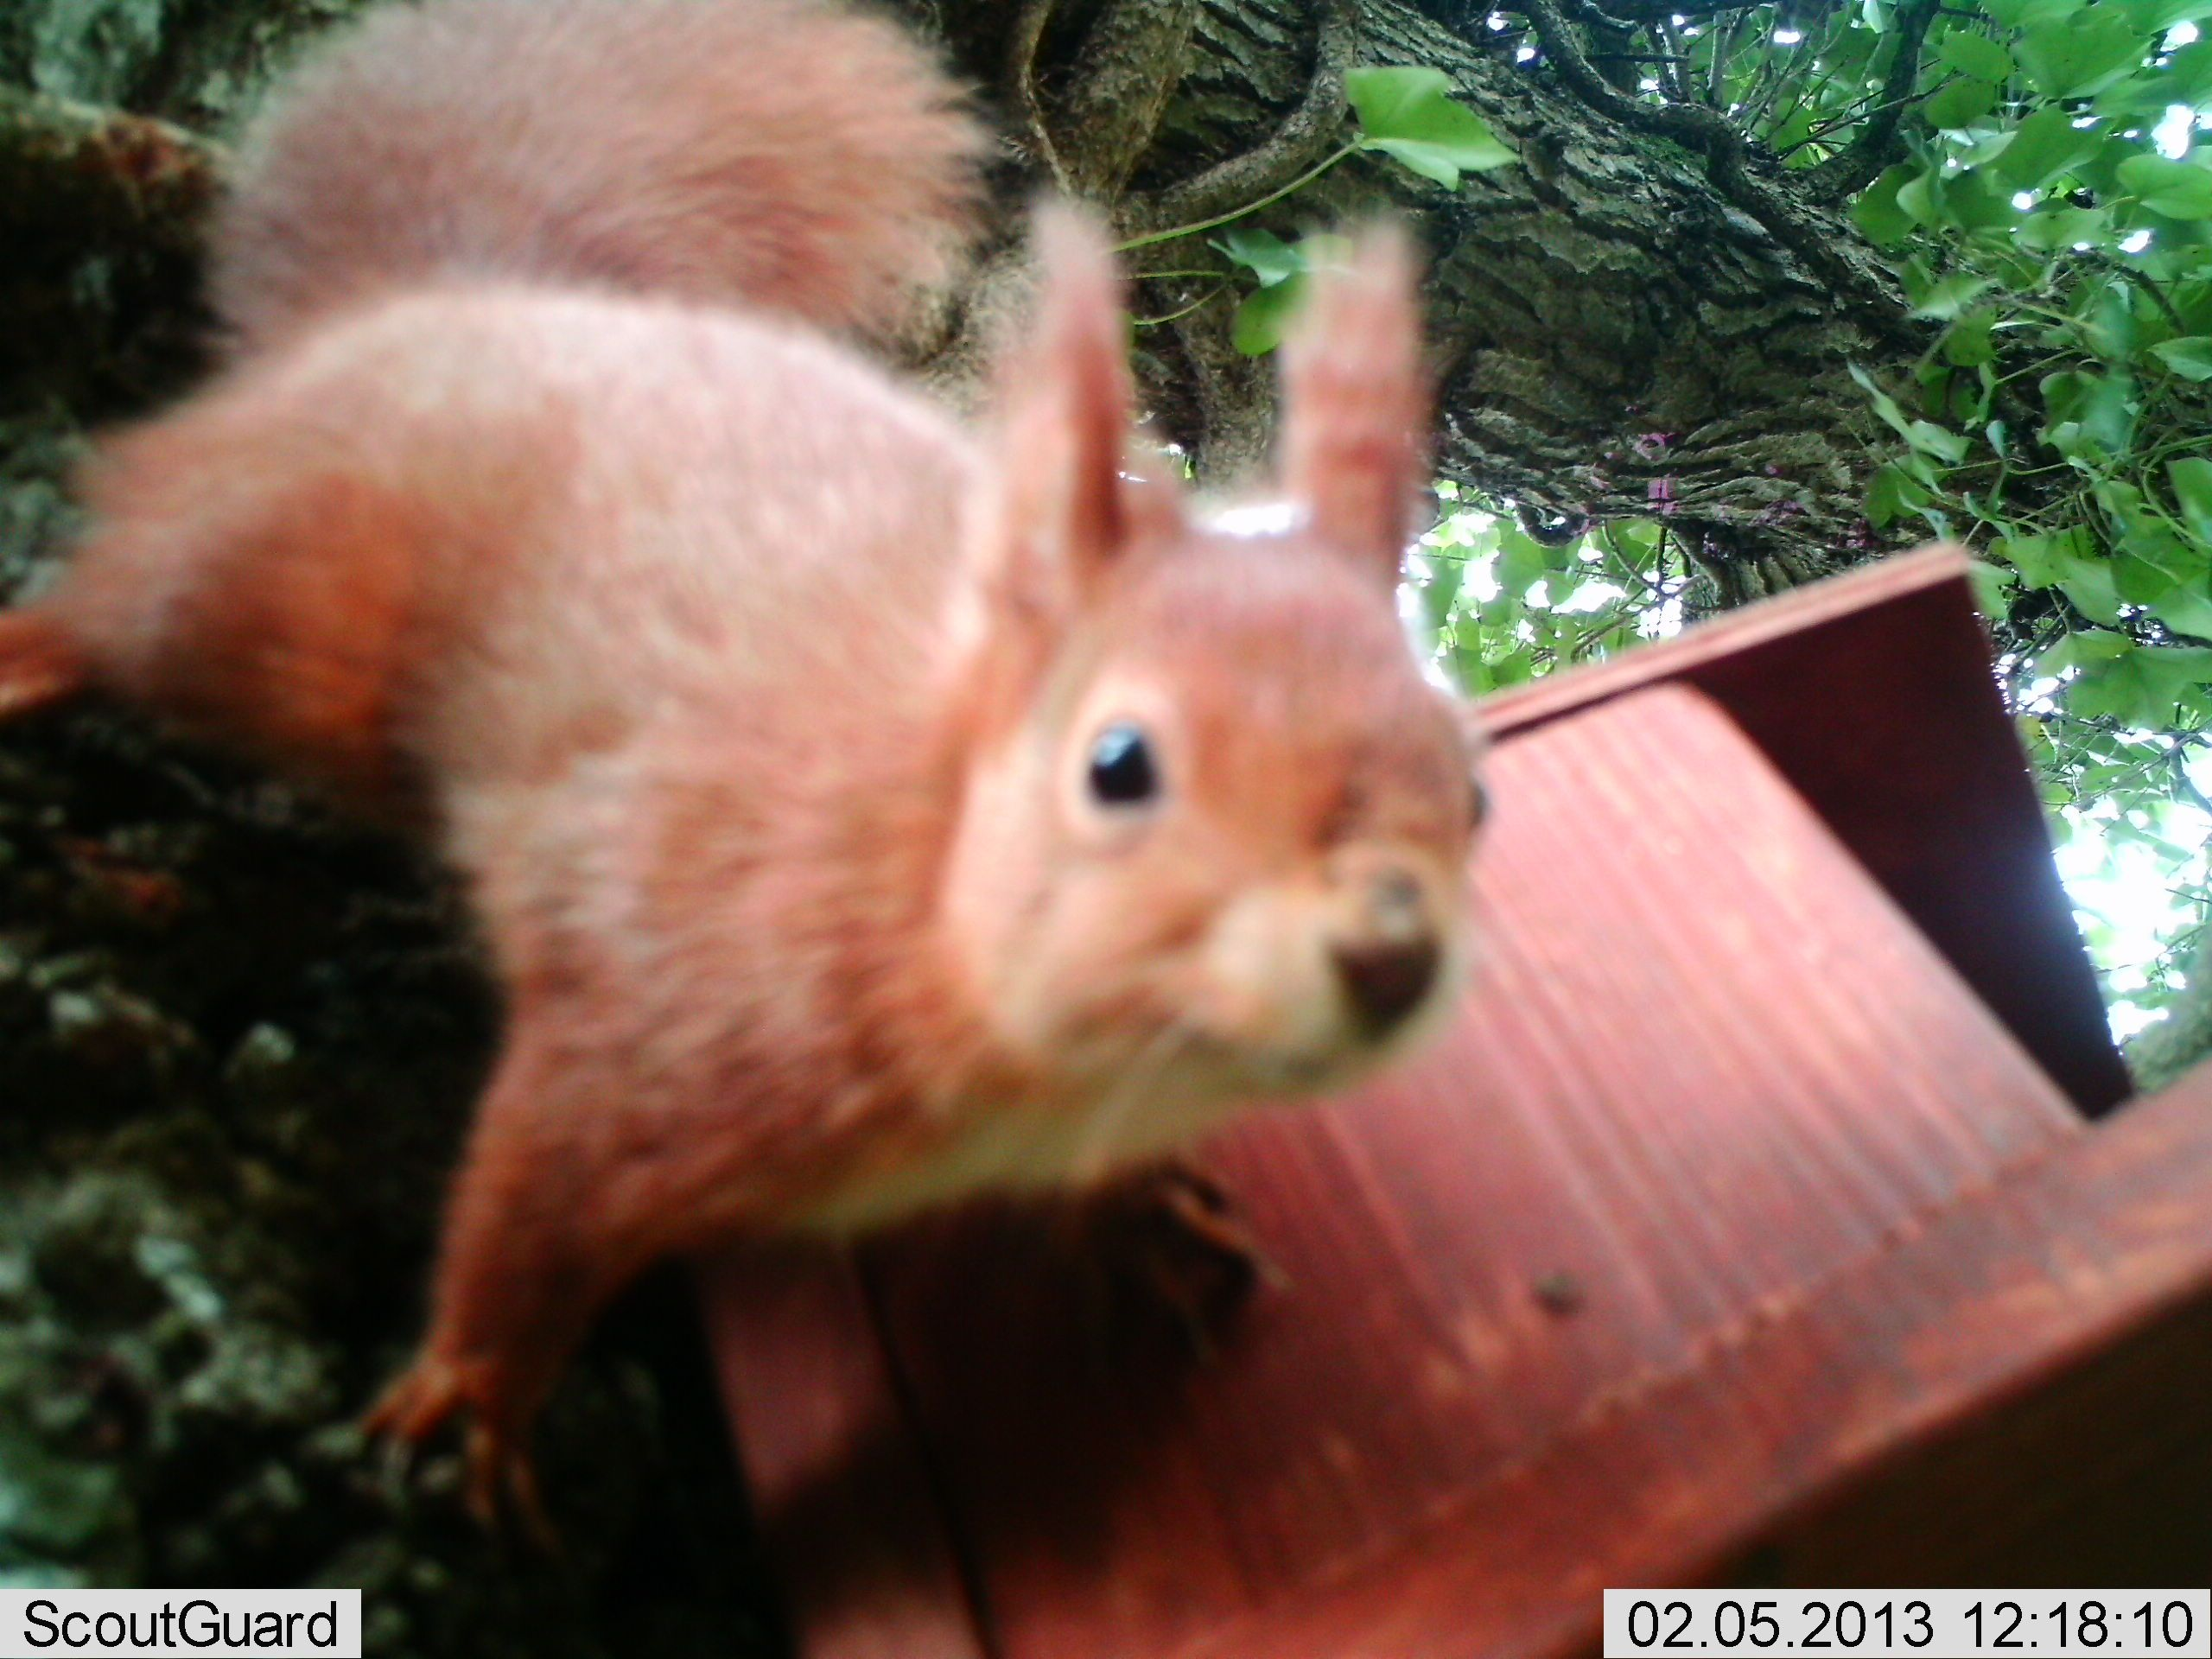 Hello there great photo of a red squirrel. The shot was